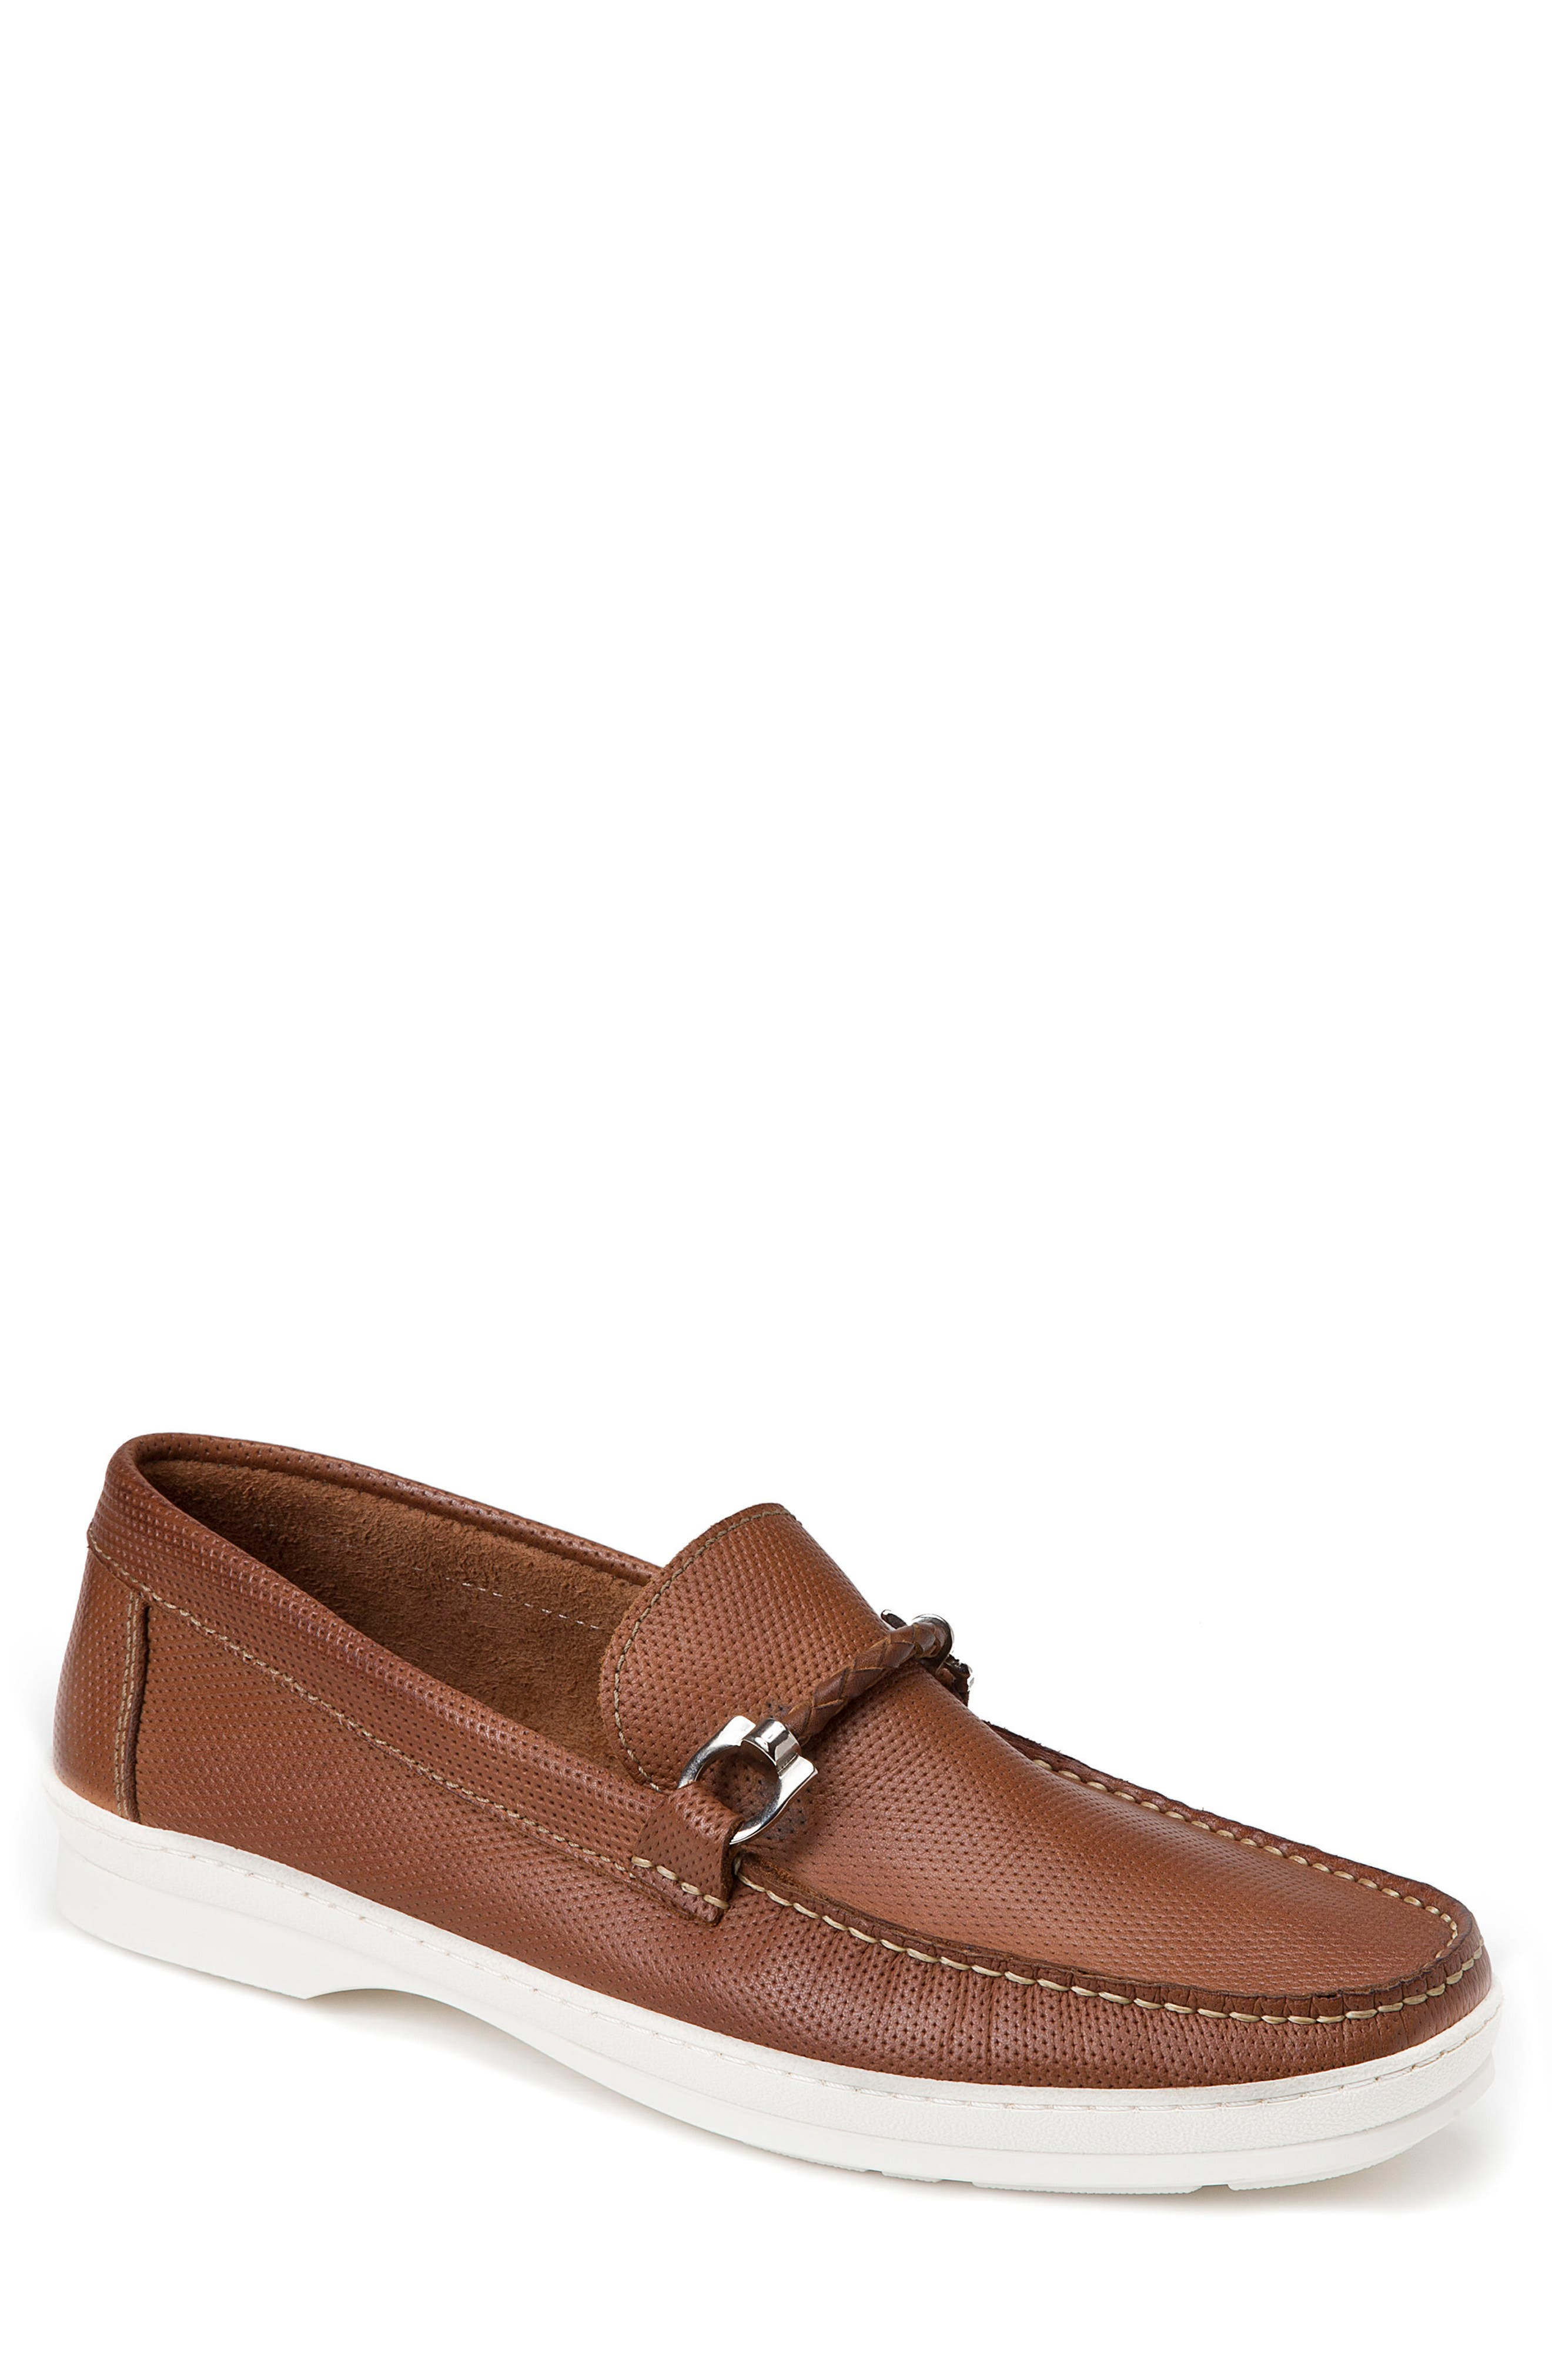 Benito Perforated Moc Toe Loafer,                         Main,                         color, TAN LEATHER